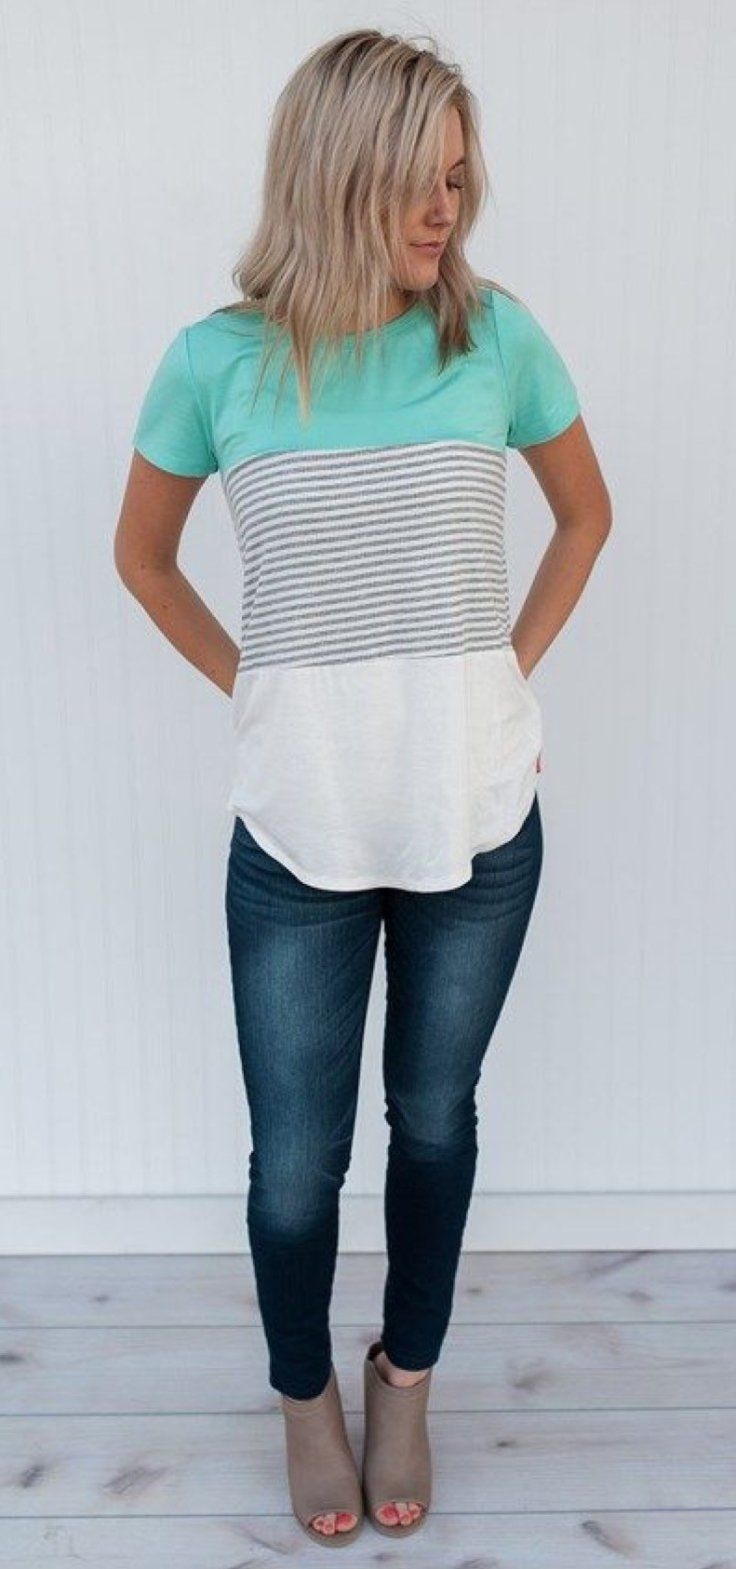 summer outfits Stitch Fix--Get Fabulous Looks Like This And Many More, Hand Picked For You By Your Own Personal Stylist And Delivered Right To Your Door With Stitch Fix. Order Your First Fix Today! #affiliate